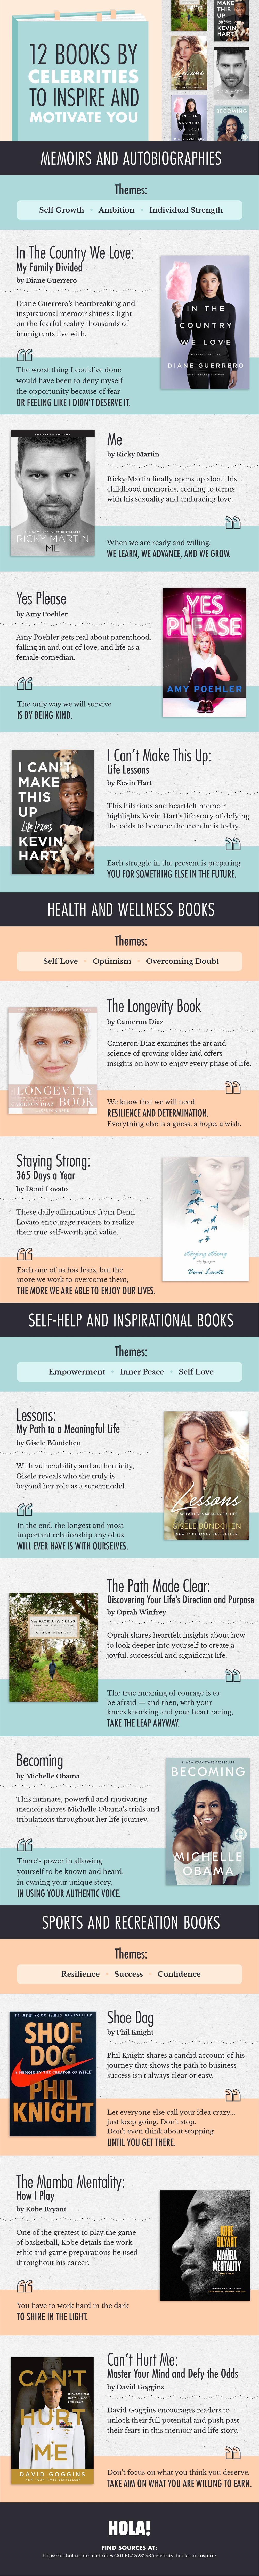 Celebrity Books Worth Reading and What They Teach You Infographic-v7.jpg